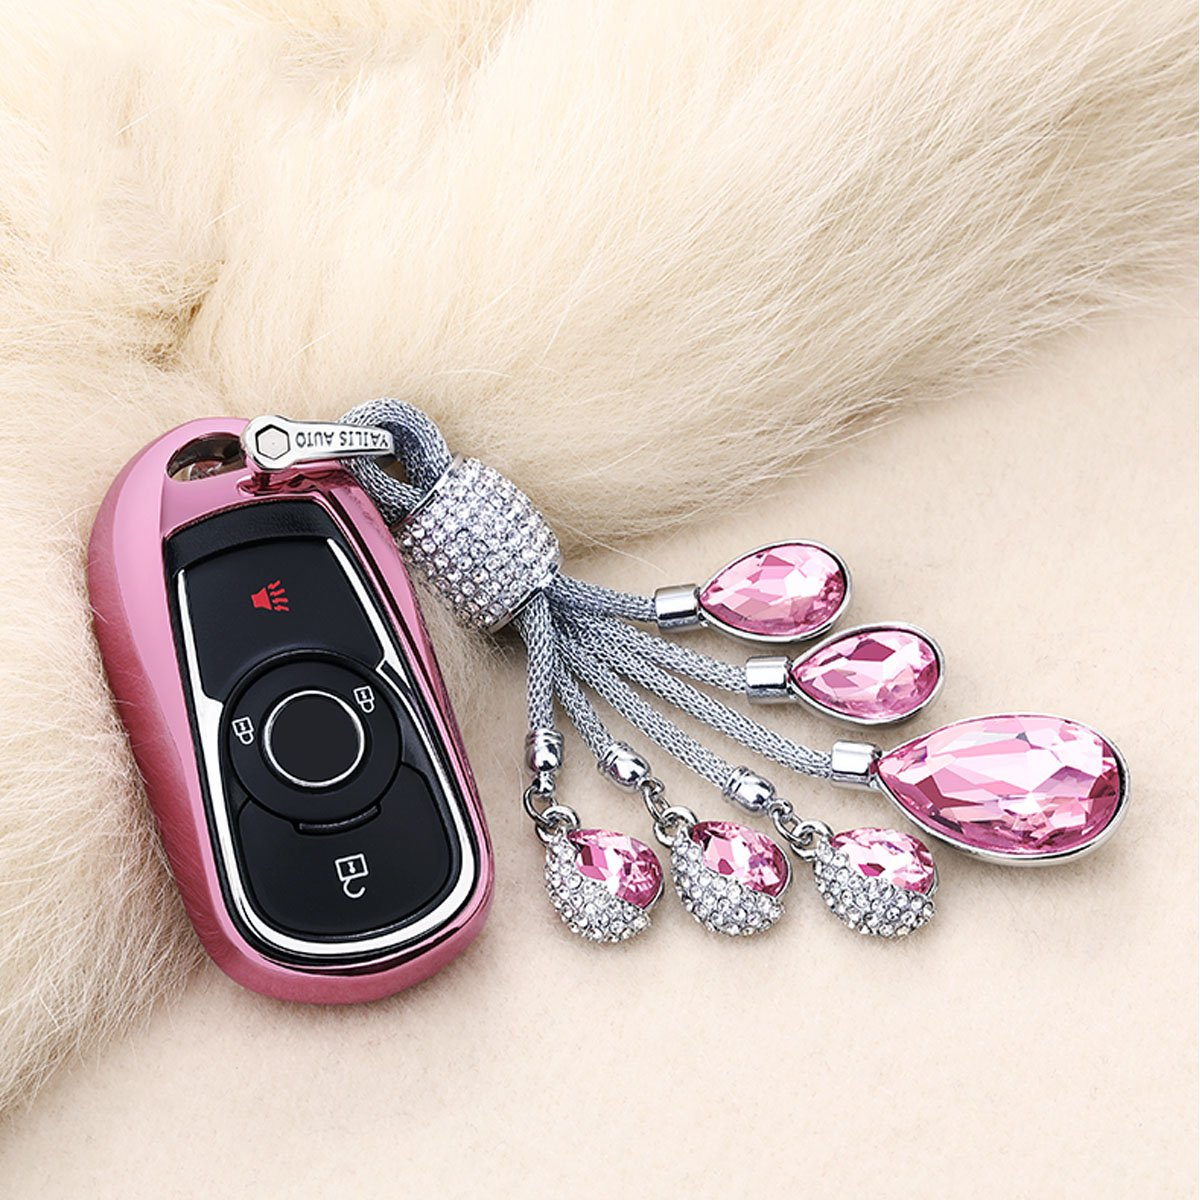 MODIPIM Keyless Entry Remote Cover Soft TPU Key Fob Case with Braided Cord Keychain for Buick Lacrosse Regal Verano Encore Envision GL8 2//3//4//5-Buttons Smart Key Color Pink